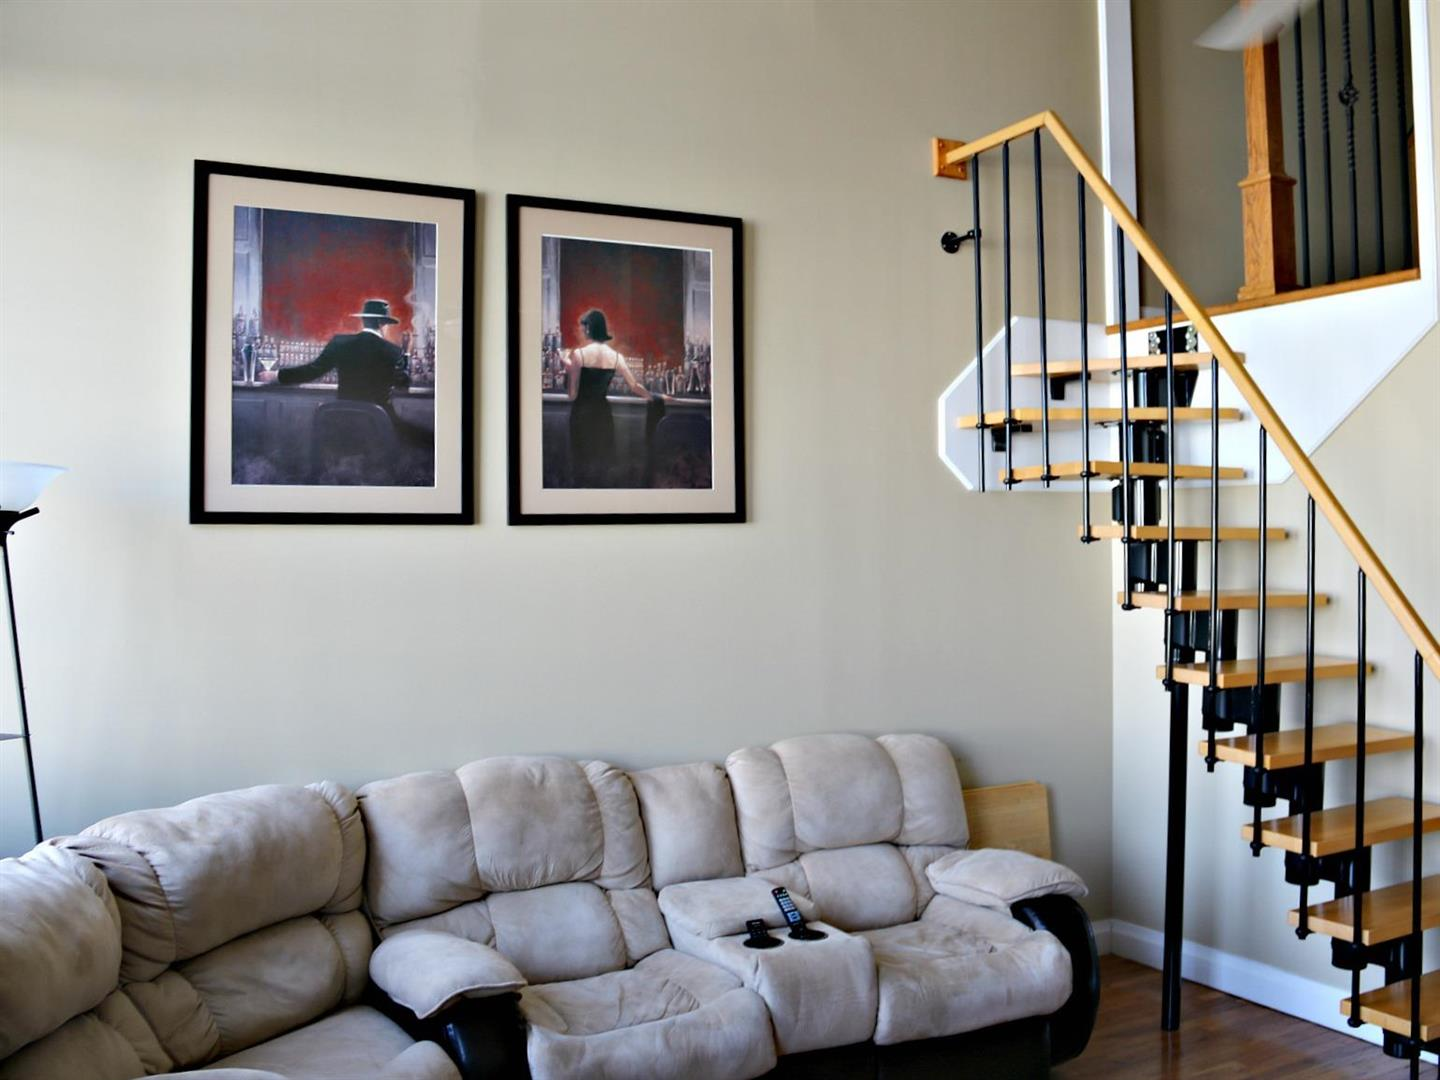 CottonMillCondos241Stairs.jpg